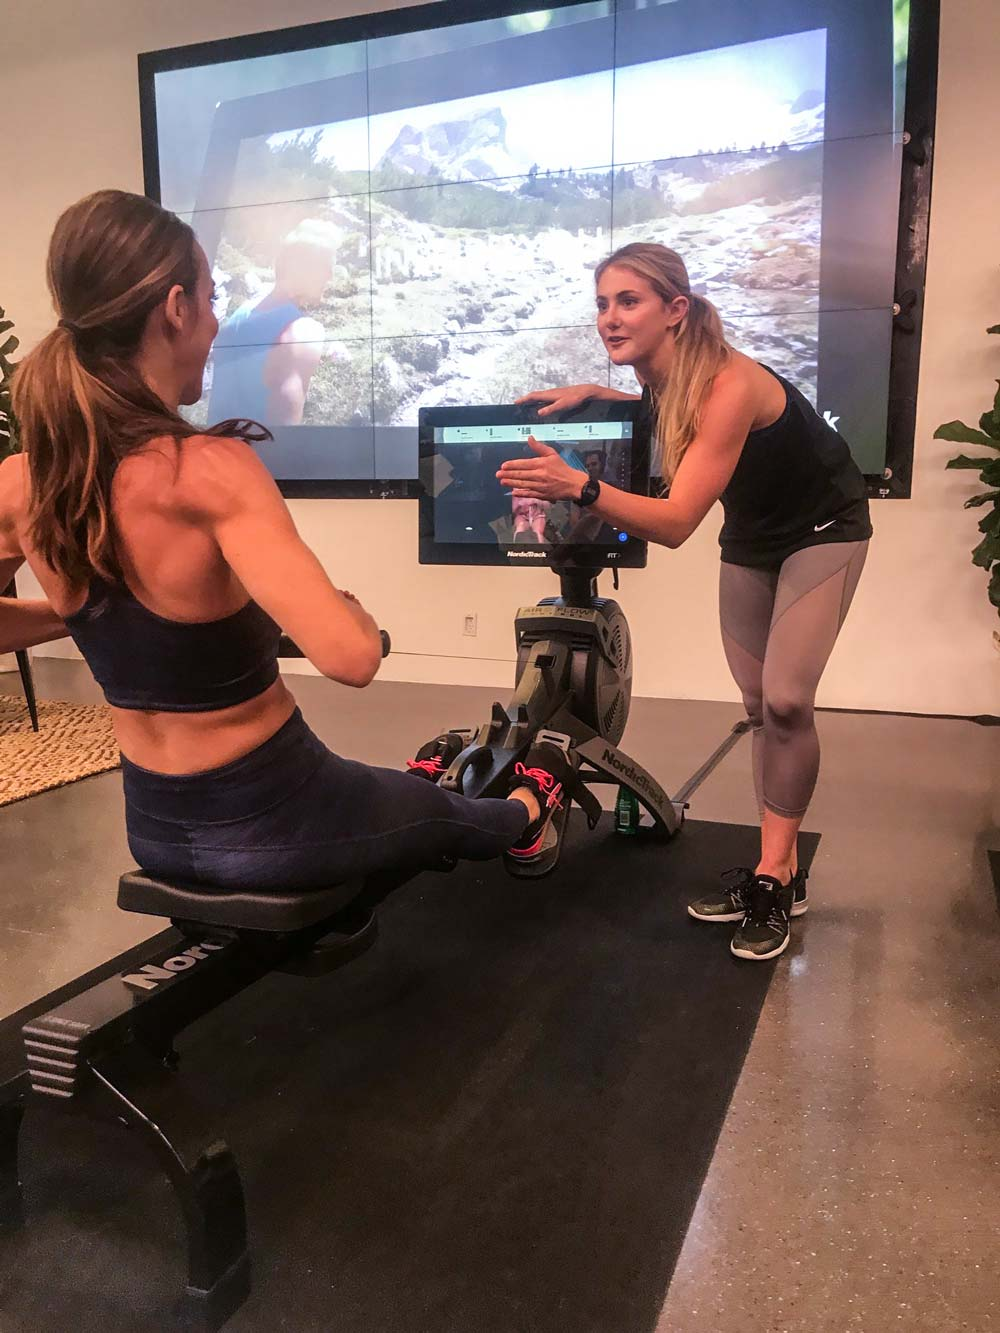 Alex discusses iFit rowing with Aly Teich, of The Sweat Life, at a Nordictrack sponsored event in NYC  PC:  Courtesy of  The Sweat Life